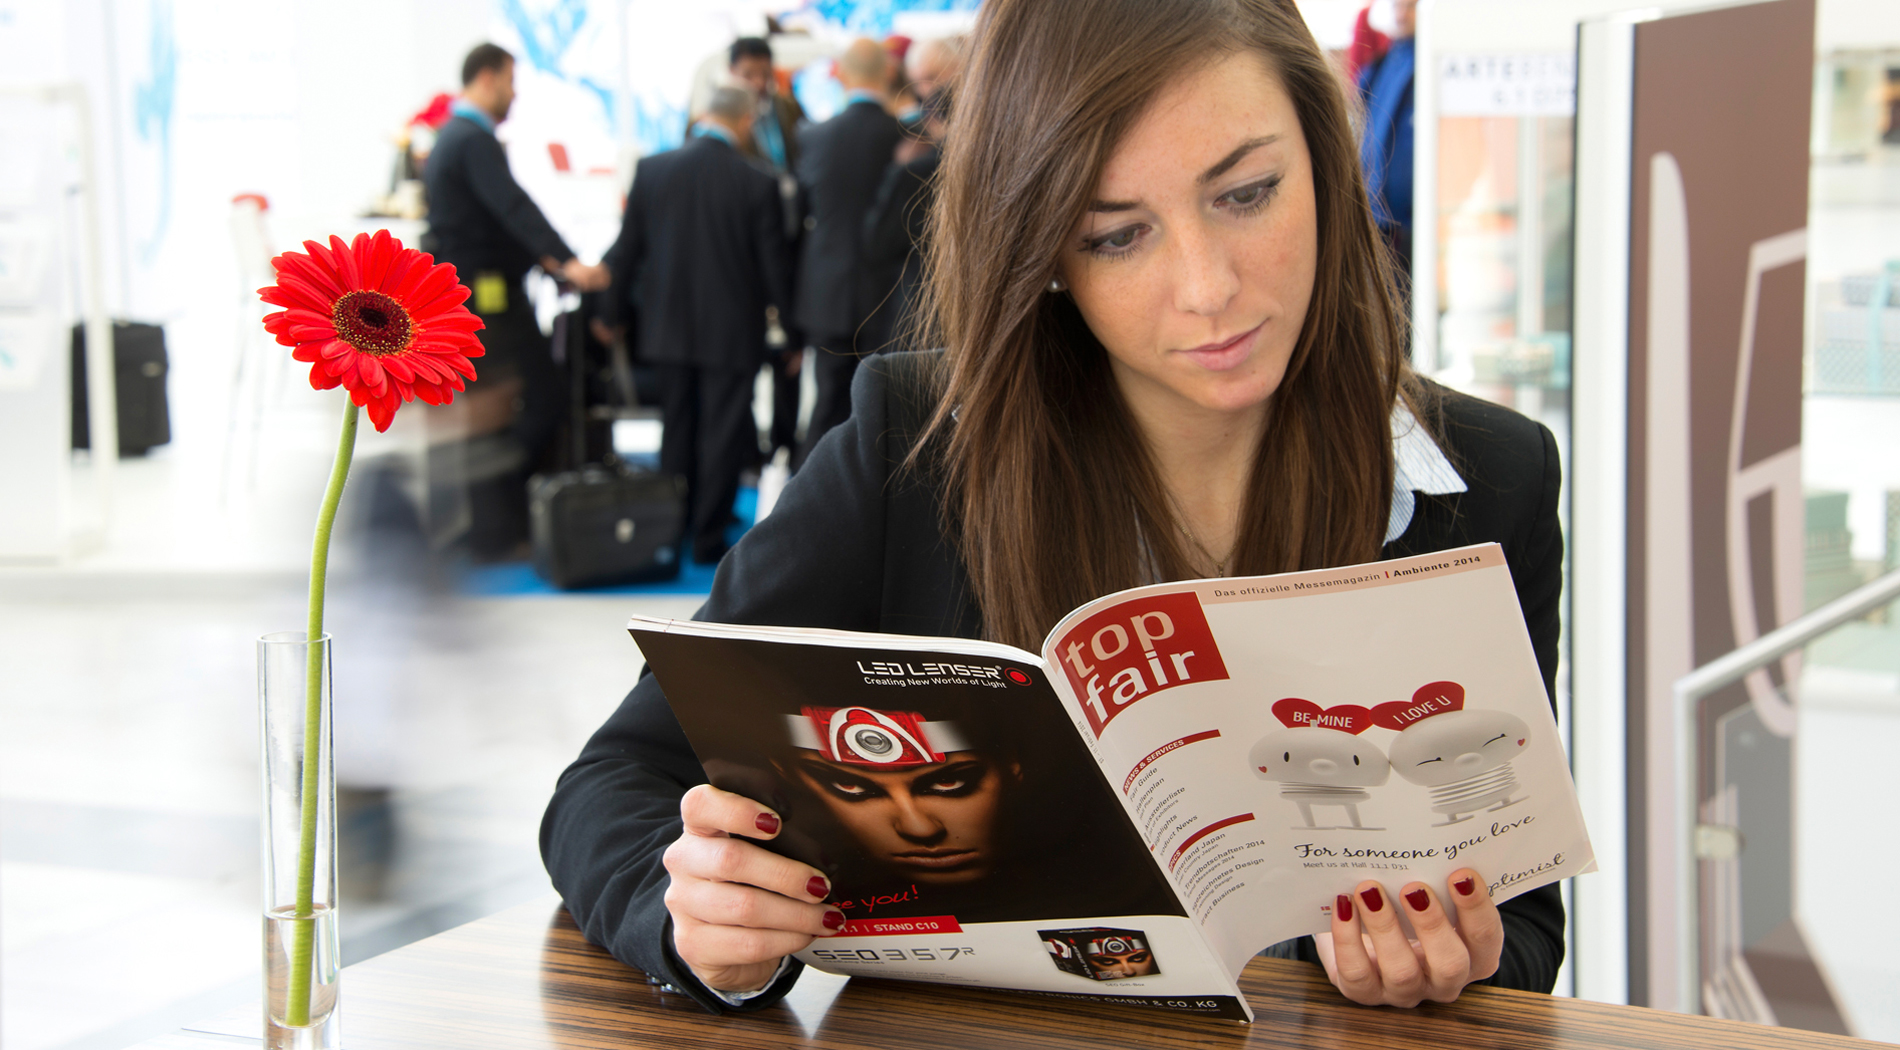 TOP FAIR – the official trade-fair magazine